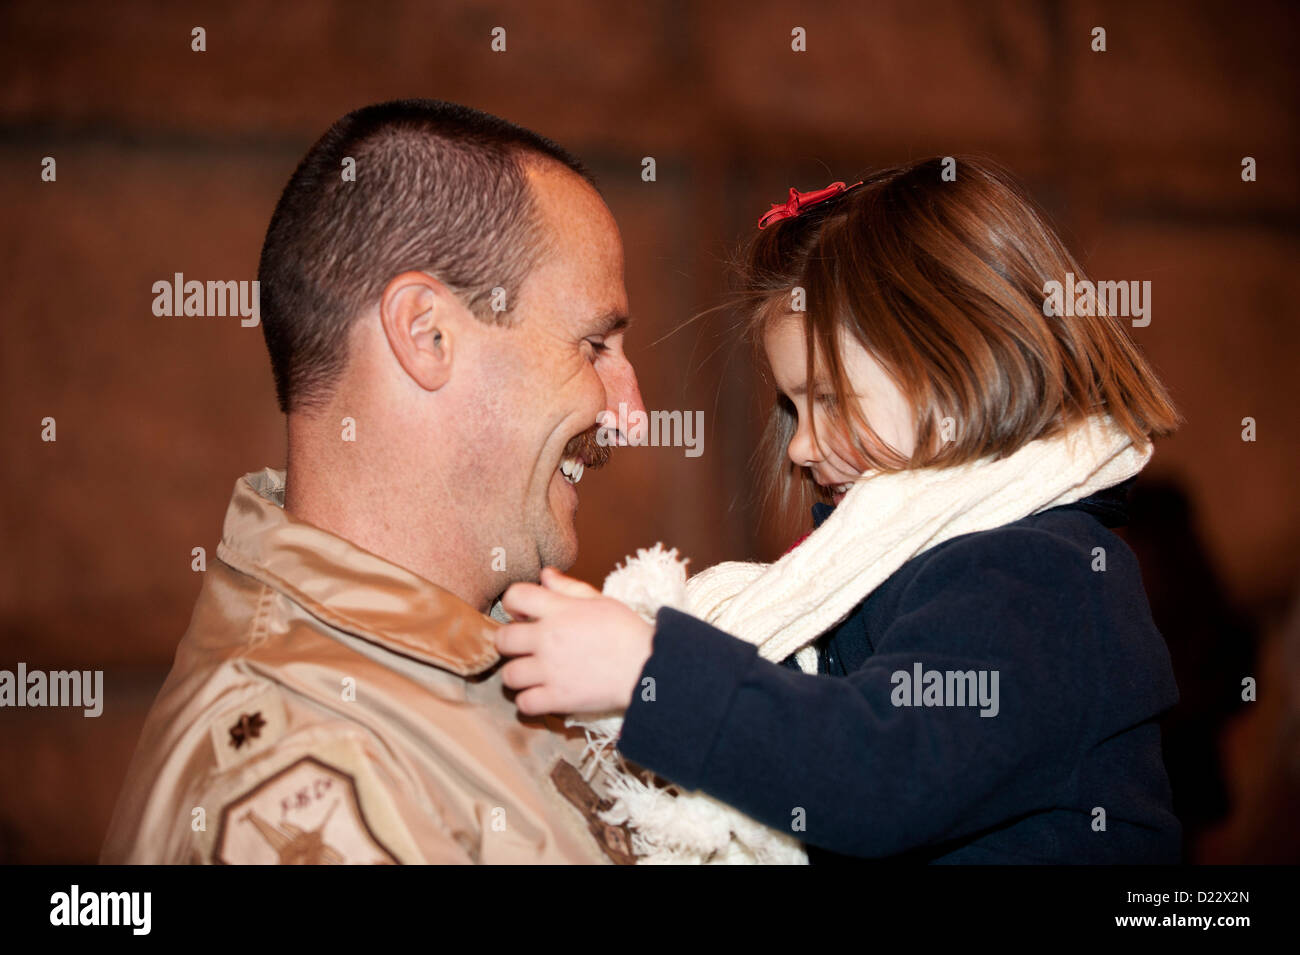 U.S. Air Force Major Mike Gommel, 120th Fighter Squadron, smiles at his daughter after returning home at Buckley Stock Photo